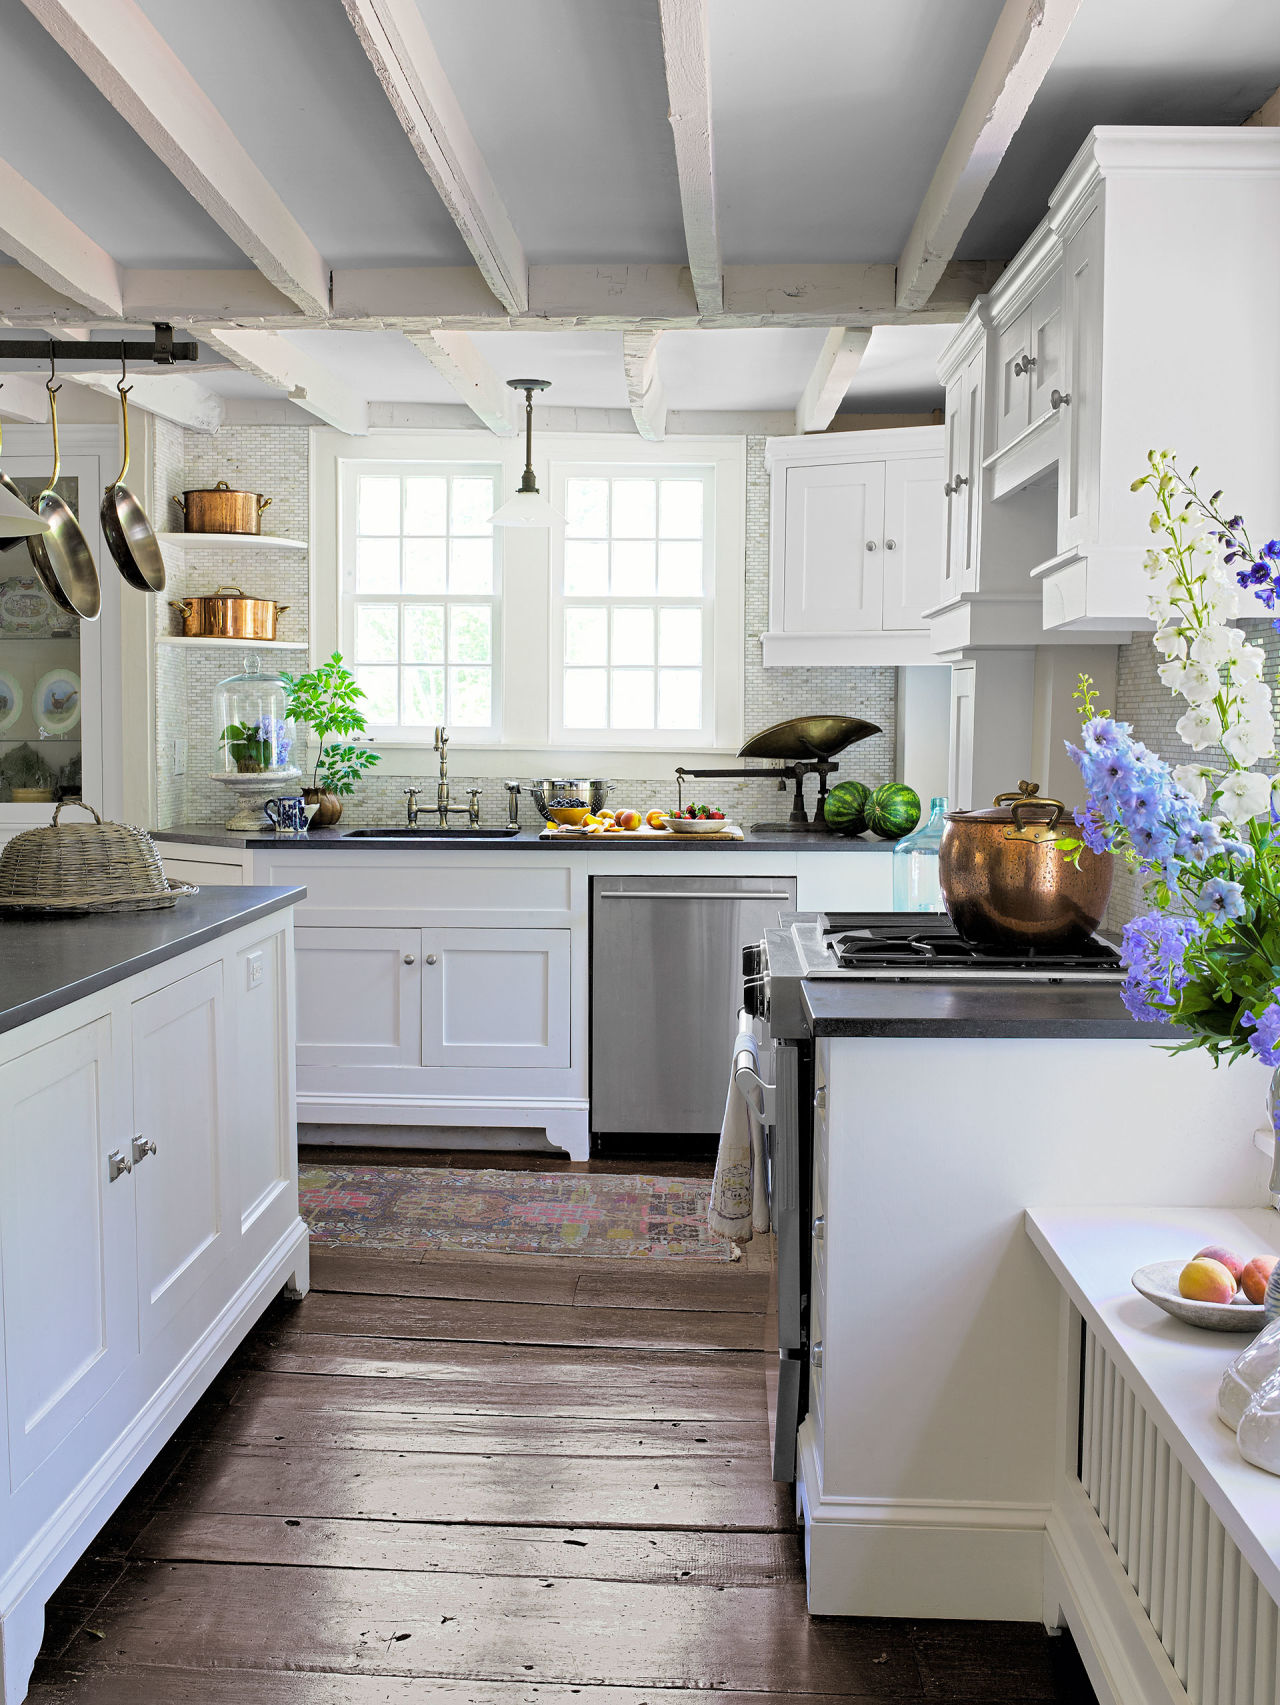 Ellen allen connecticut farmhouse farmhouse decorating ideas for House kitchen design